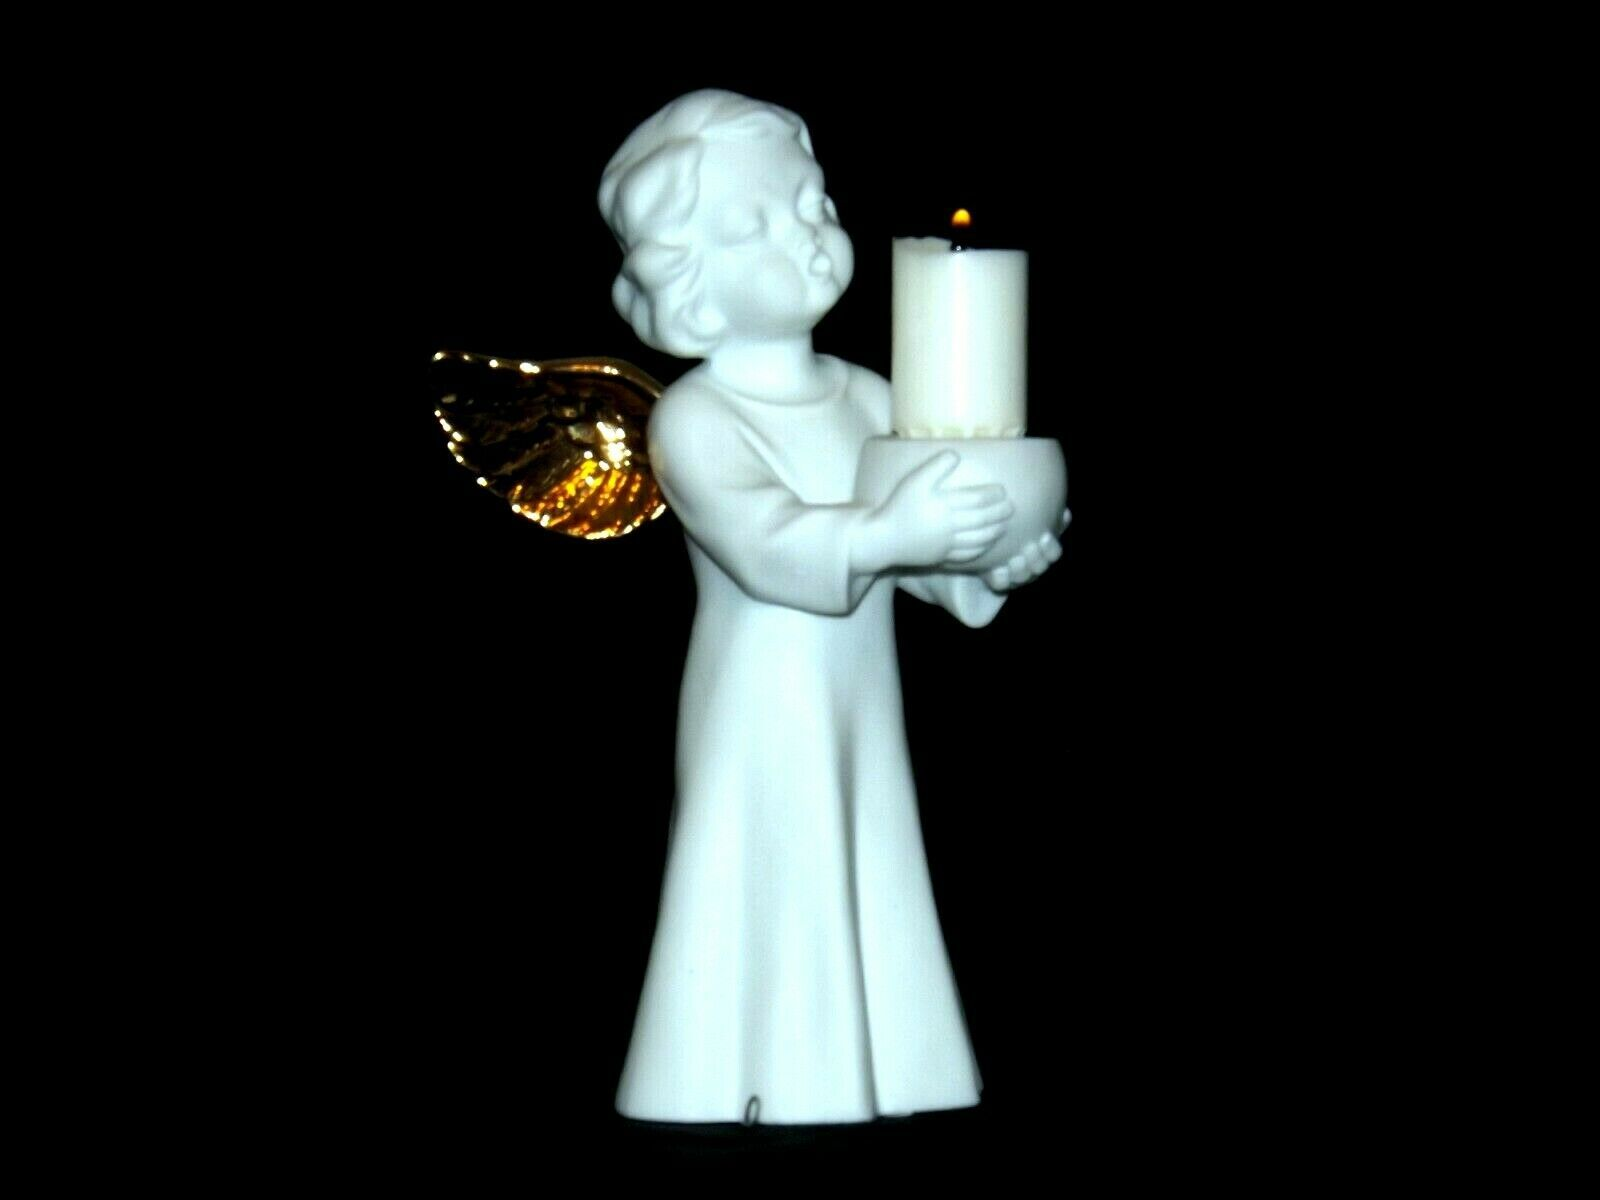 Singing Angel Holding a Candle AA19-1685 Vintage